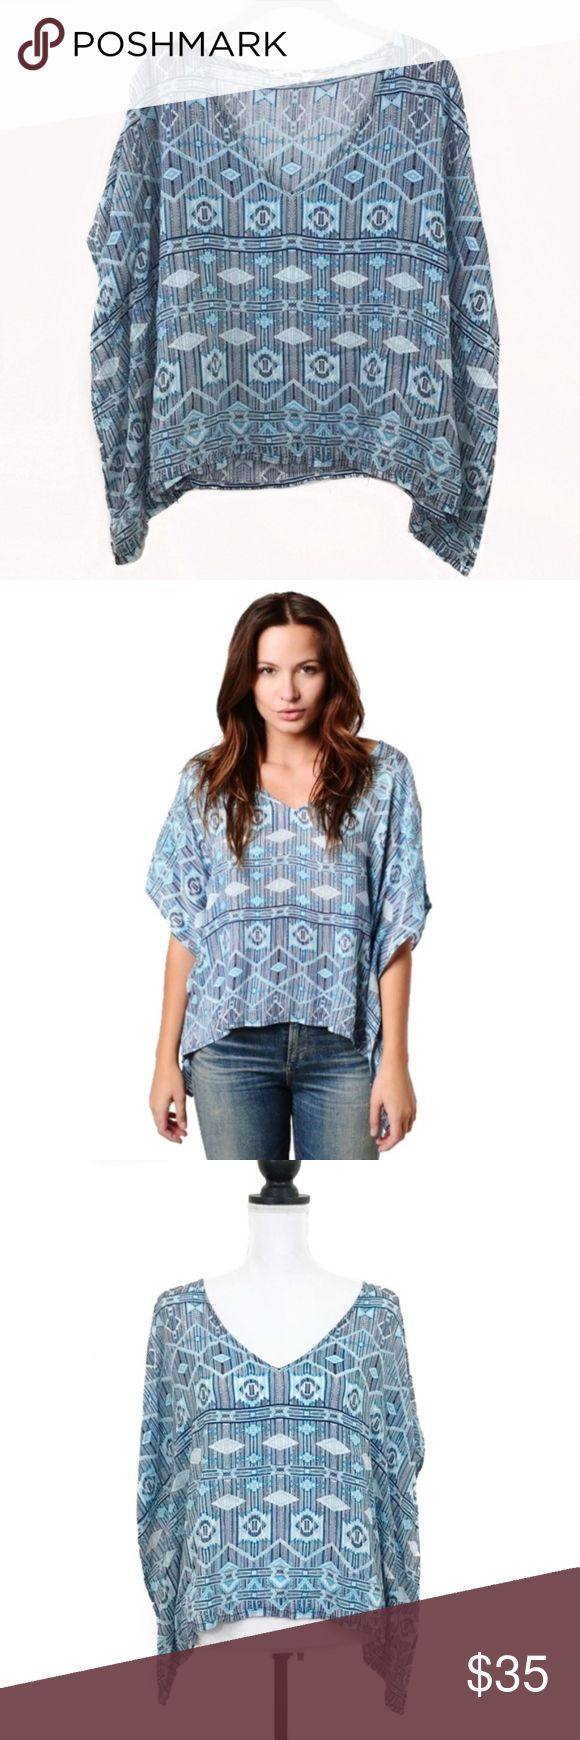 BB Dakota Blue Aztec Print 'Heath' Batwing Top Breezy and lightweight Aztec tribal printed top in shades of blue and white. V-neck with bat wing sleeves. BB Dakota Tops